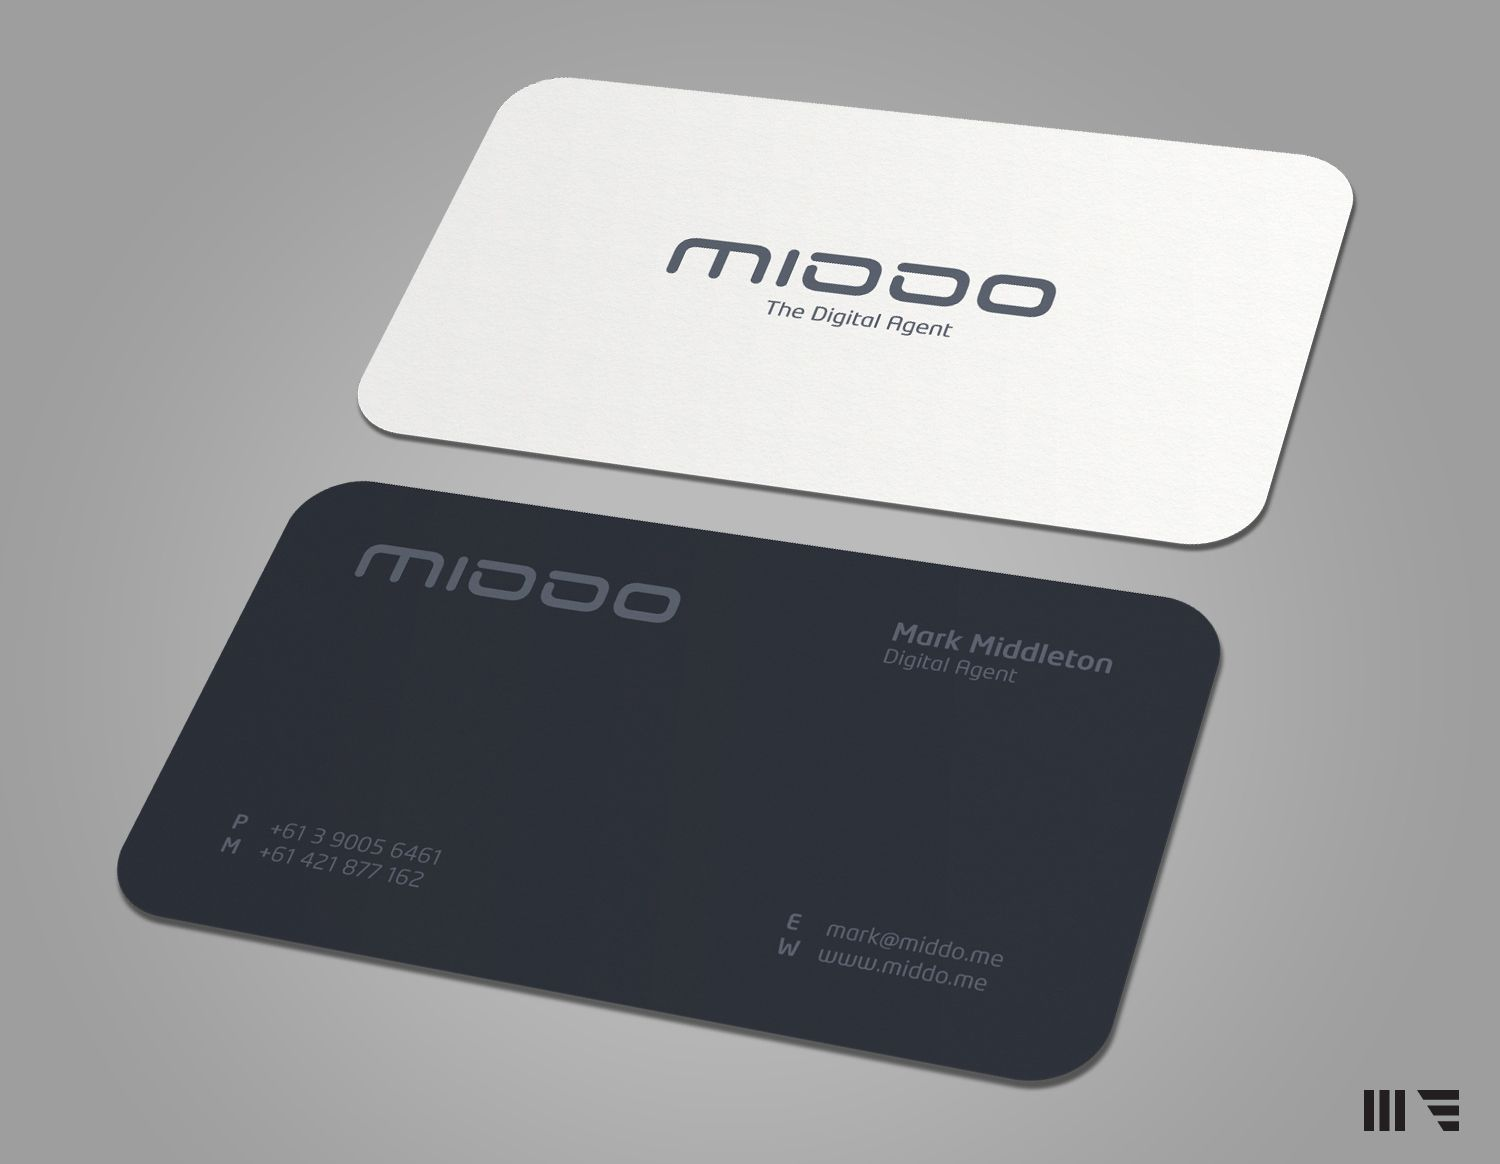 Middo biz card mockup brand identity pinterest mockup business card printing from same day printing fast and affordable never looked better boost your business with a big impression at a low cost colourmoves Image collections